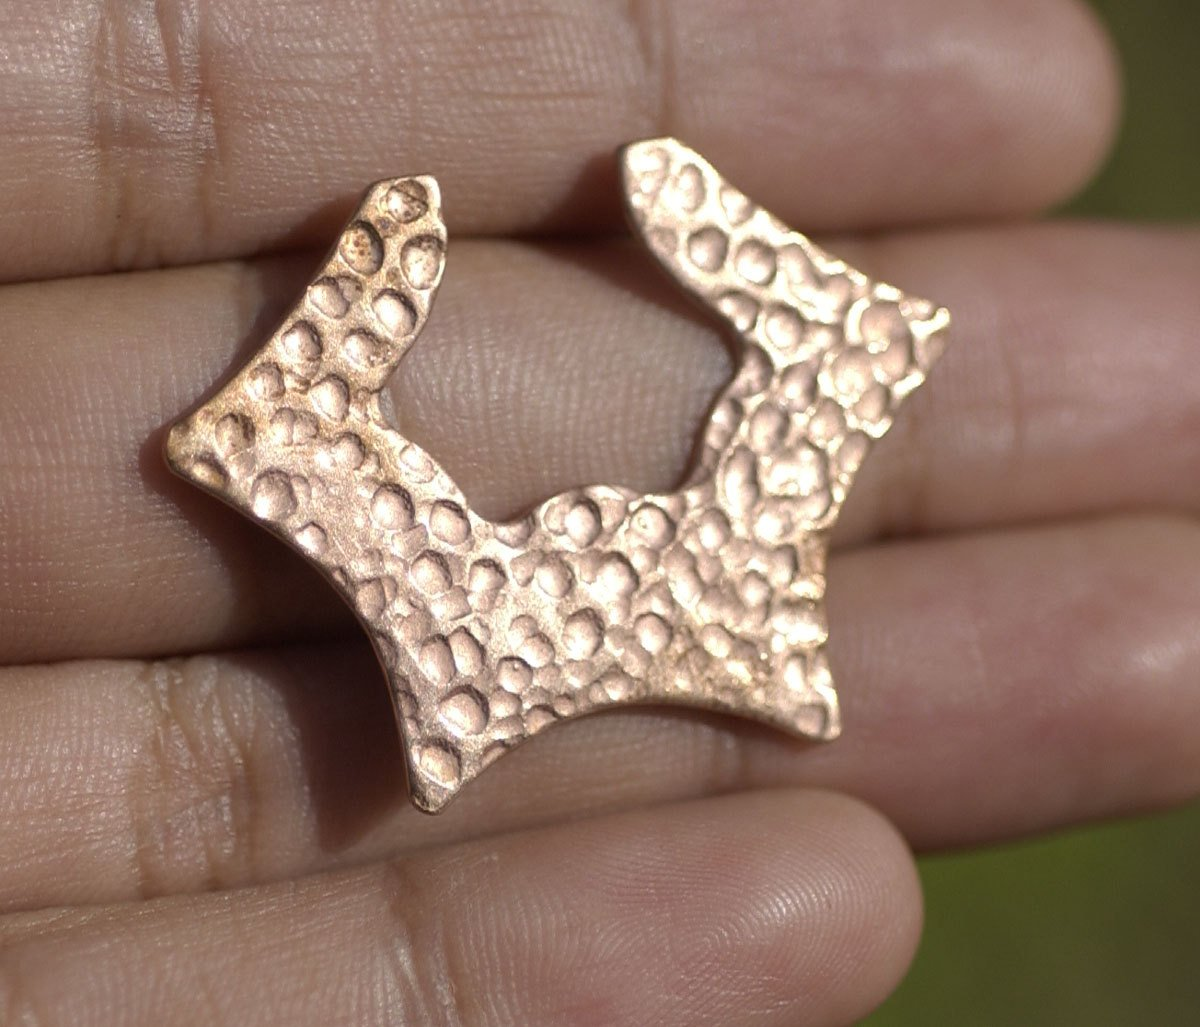 Buy Dappled Hammered Hoops Star Forms 27mm x 36.5mm for Earrings or Pendant for Enameling Stamping Texturing Blanks Variety of Metals - 4 pieces online